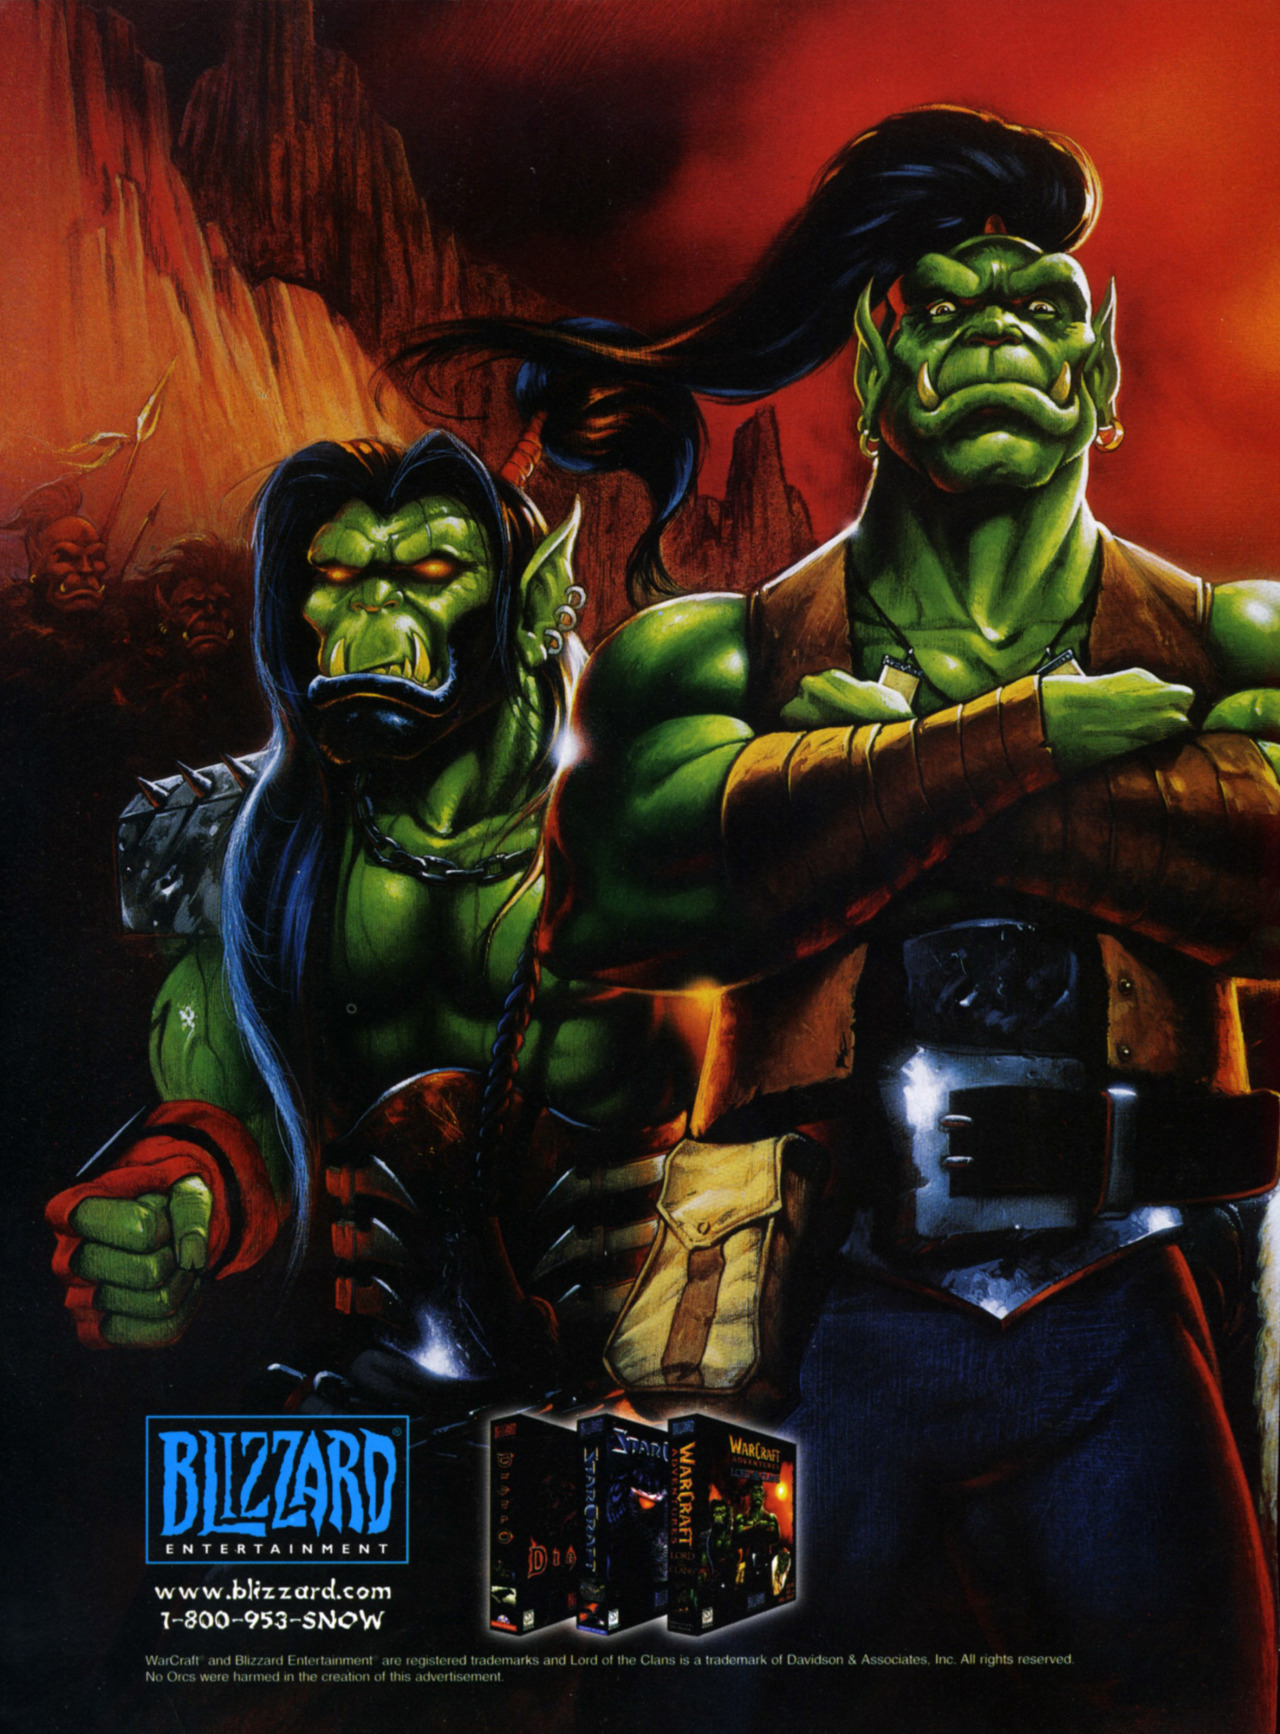 Se filtra Warcraft adventures: Lord of the clans, la aventura gráfica cuyo protagonista era Thrall y Blizzard canceló